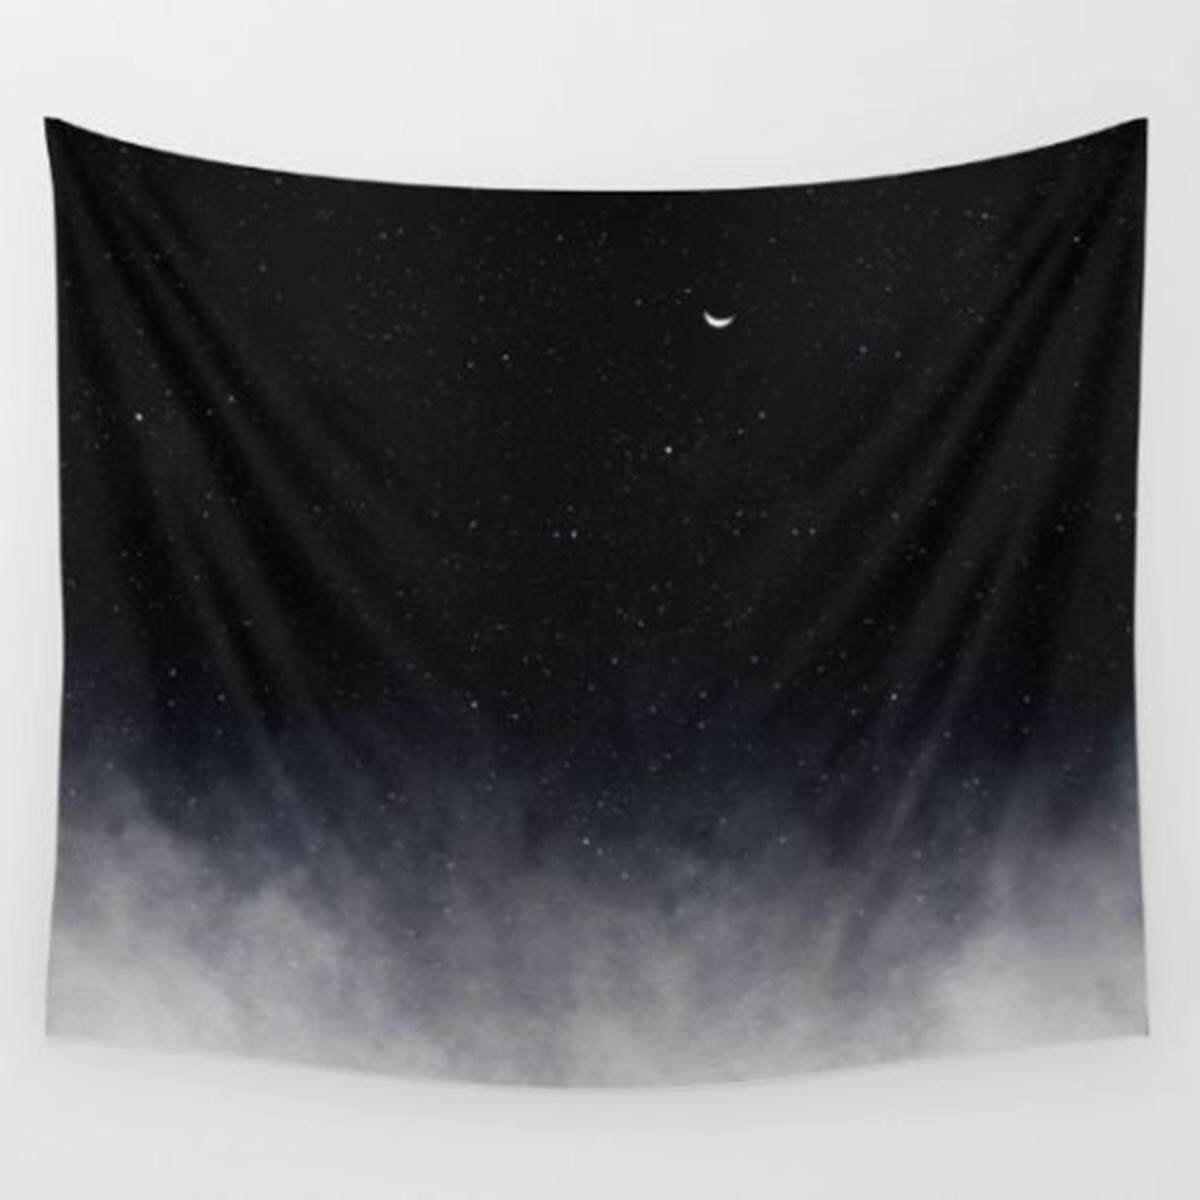 Black Galaxy Mandala Tapestry Wall Hanging Throw Dorm Beach Bedspread Mat Decor